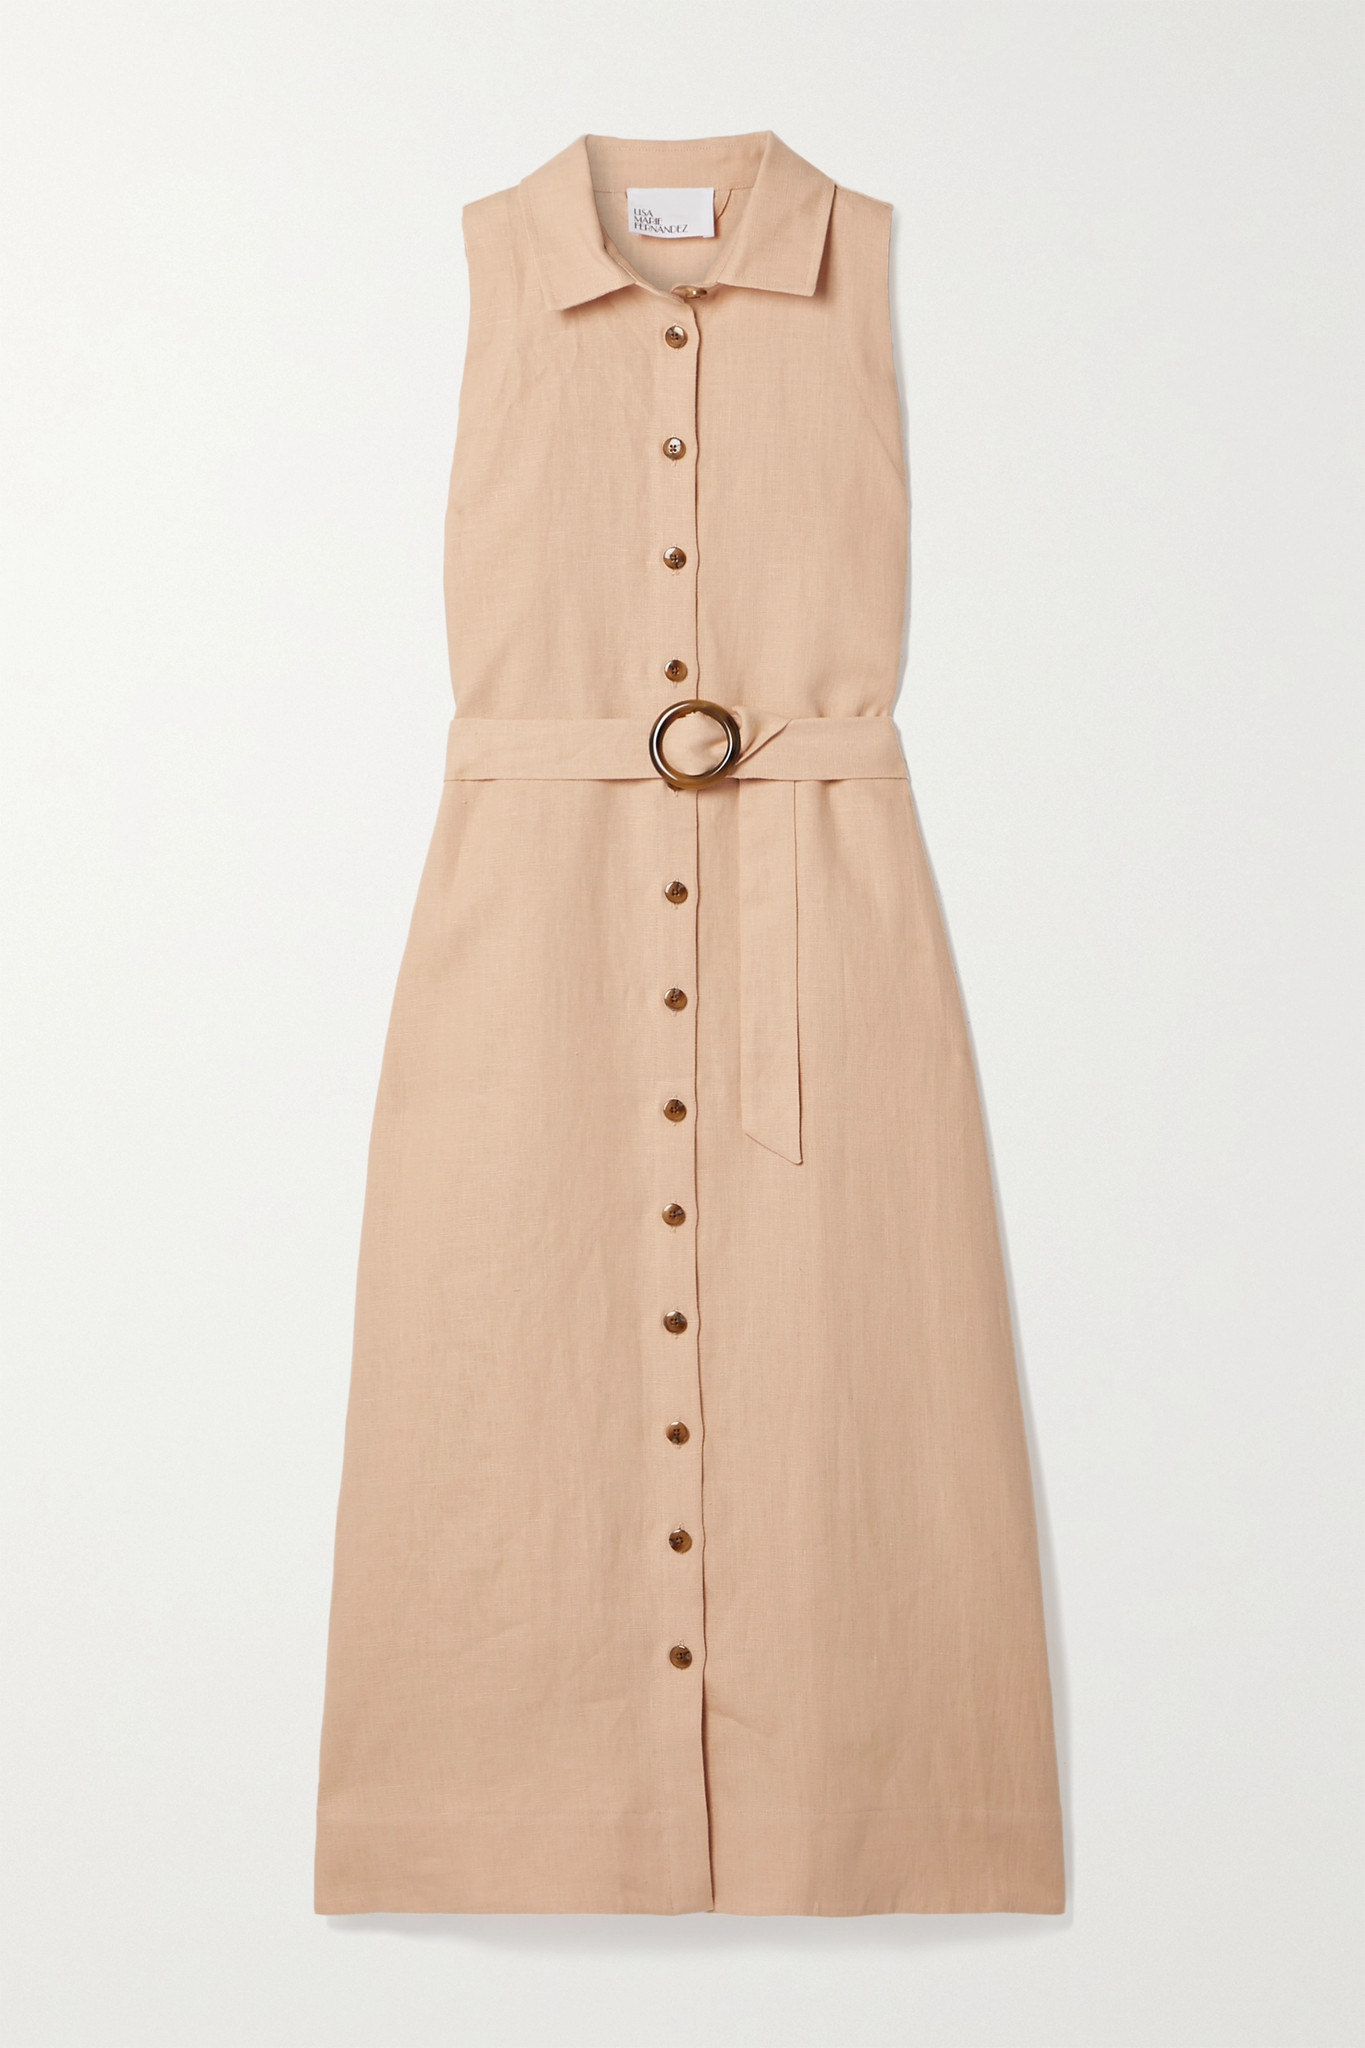 LISA MARIE FERNANDEZ - + Net Sustain Alison Linen Midi Dress - Pink - 1